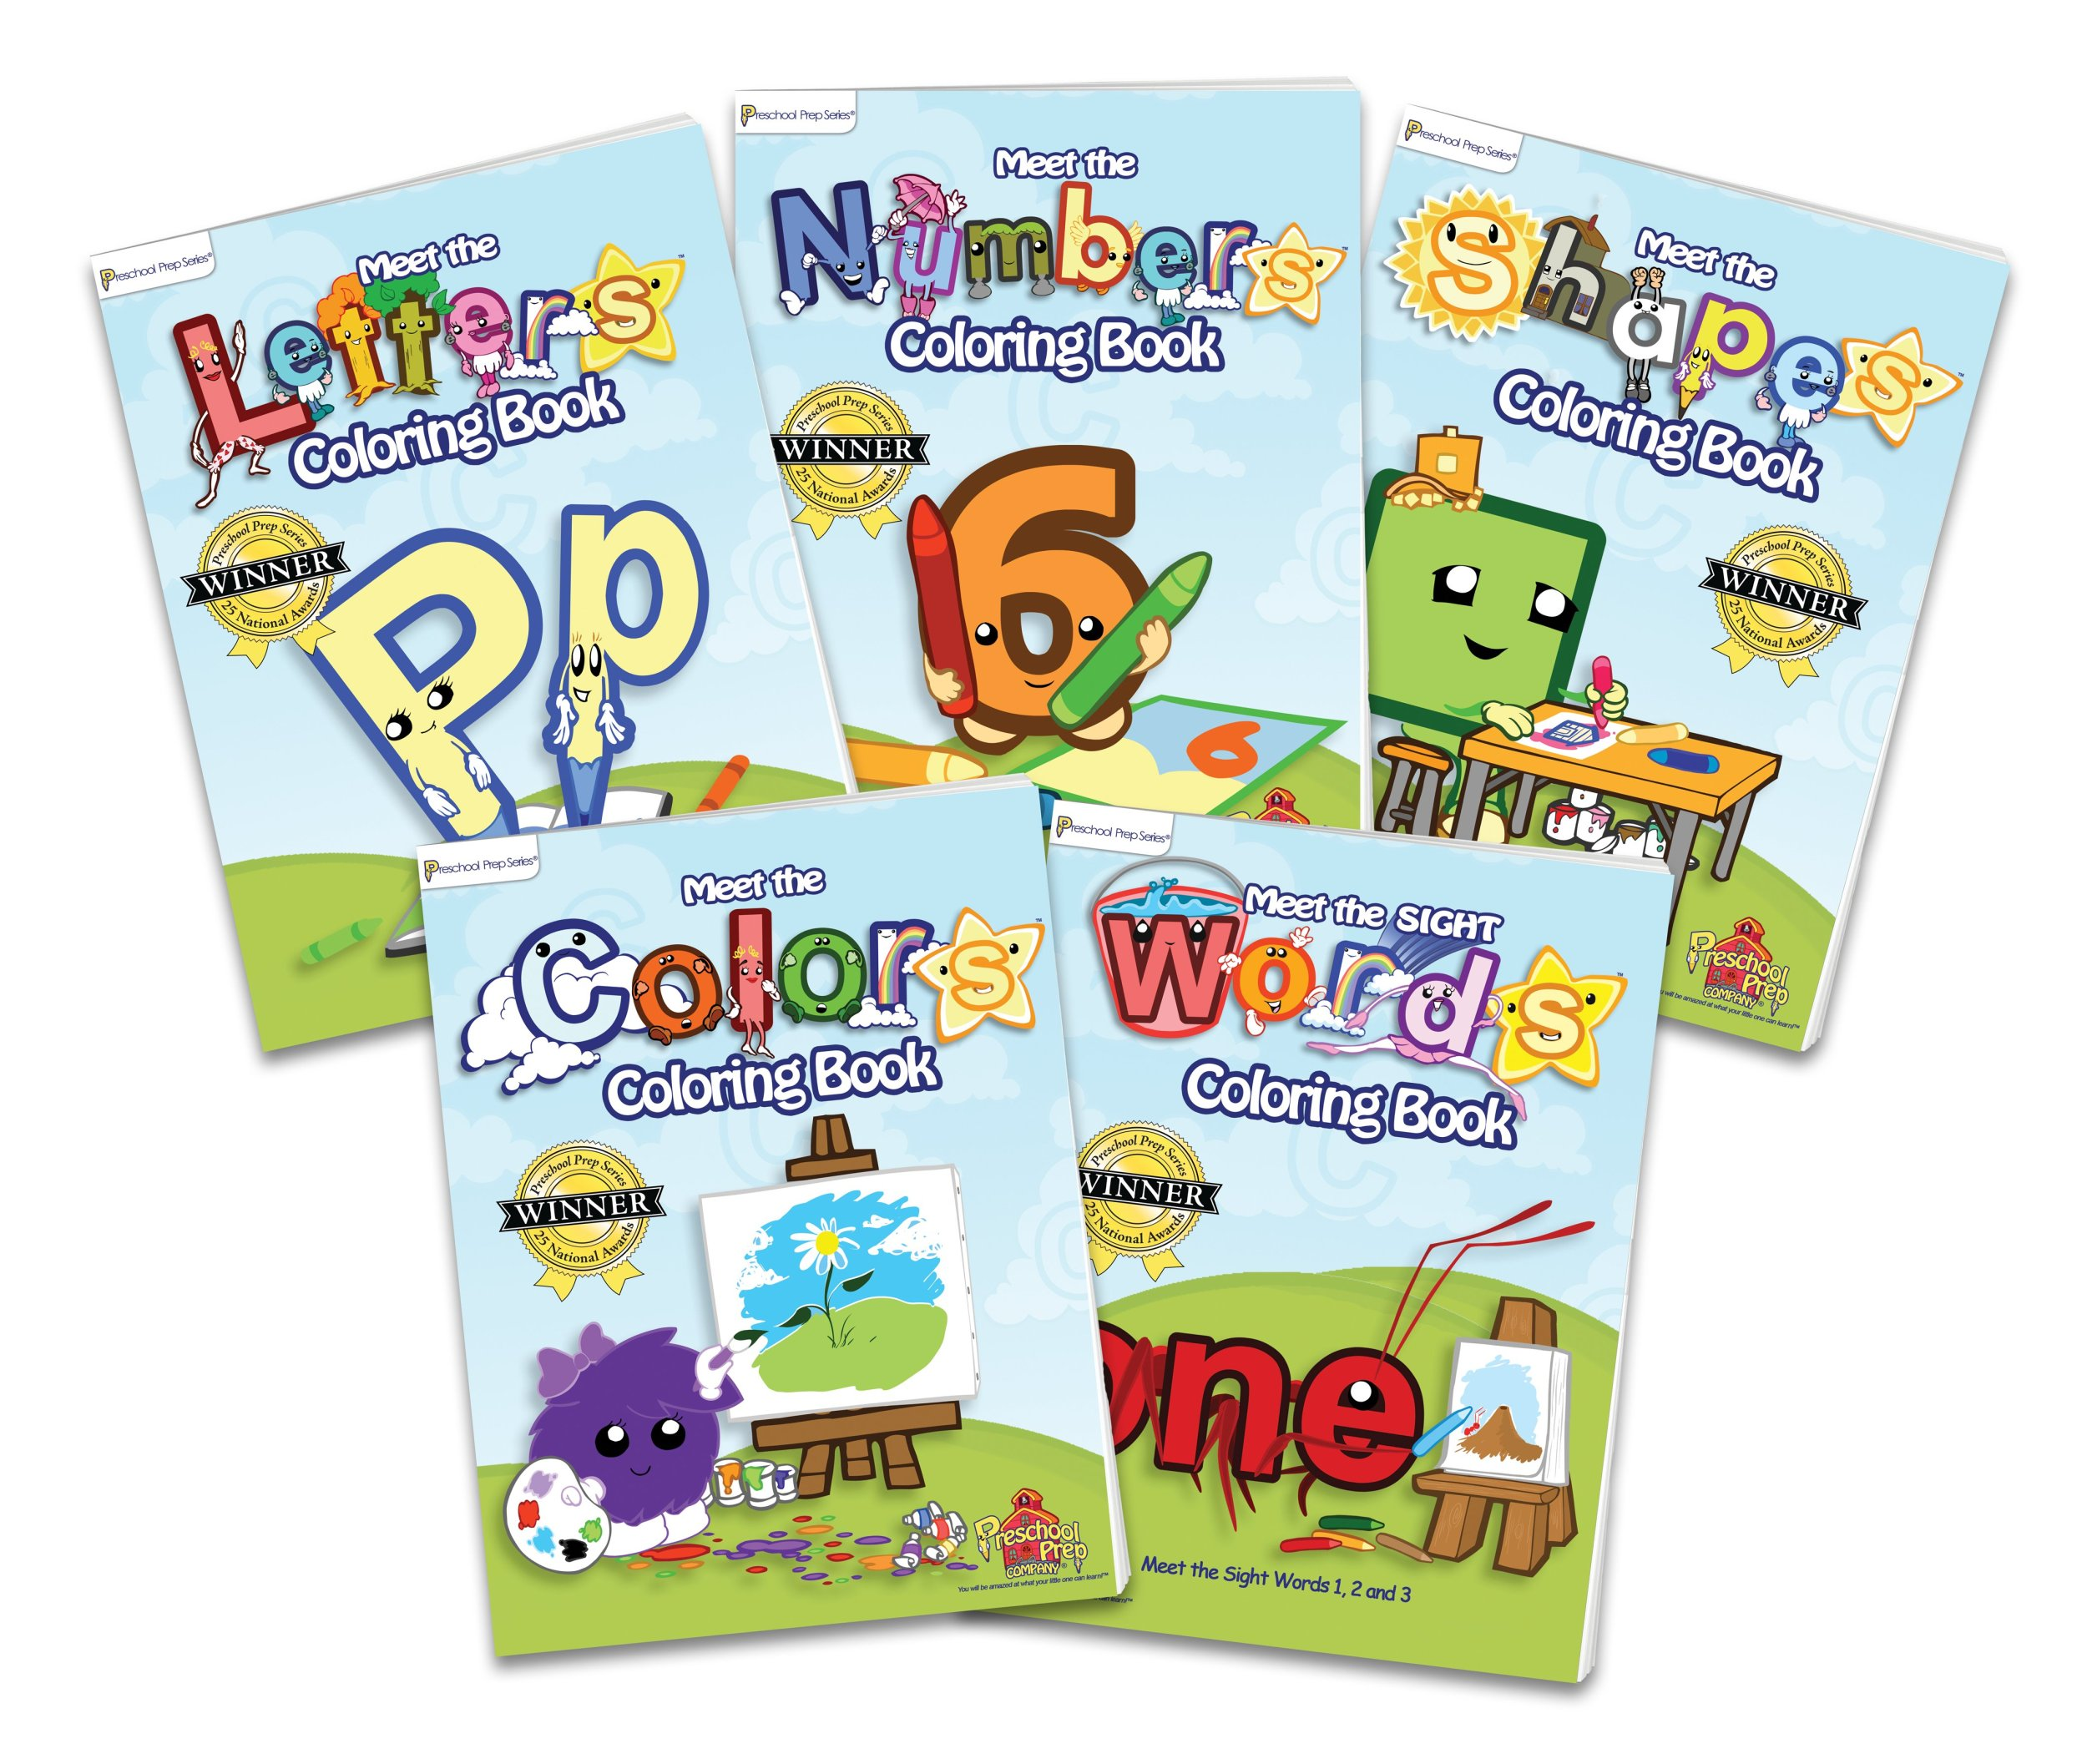 preschool prep coloring book pack 5 coloring books meet the letters meet the numbers meet the shapes meet the colors and meet the sight words kathy - Preschool Coloring Book